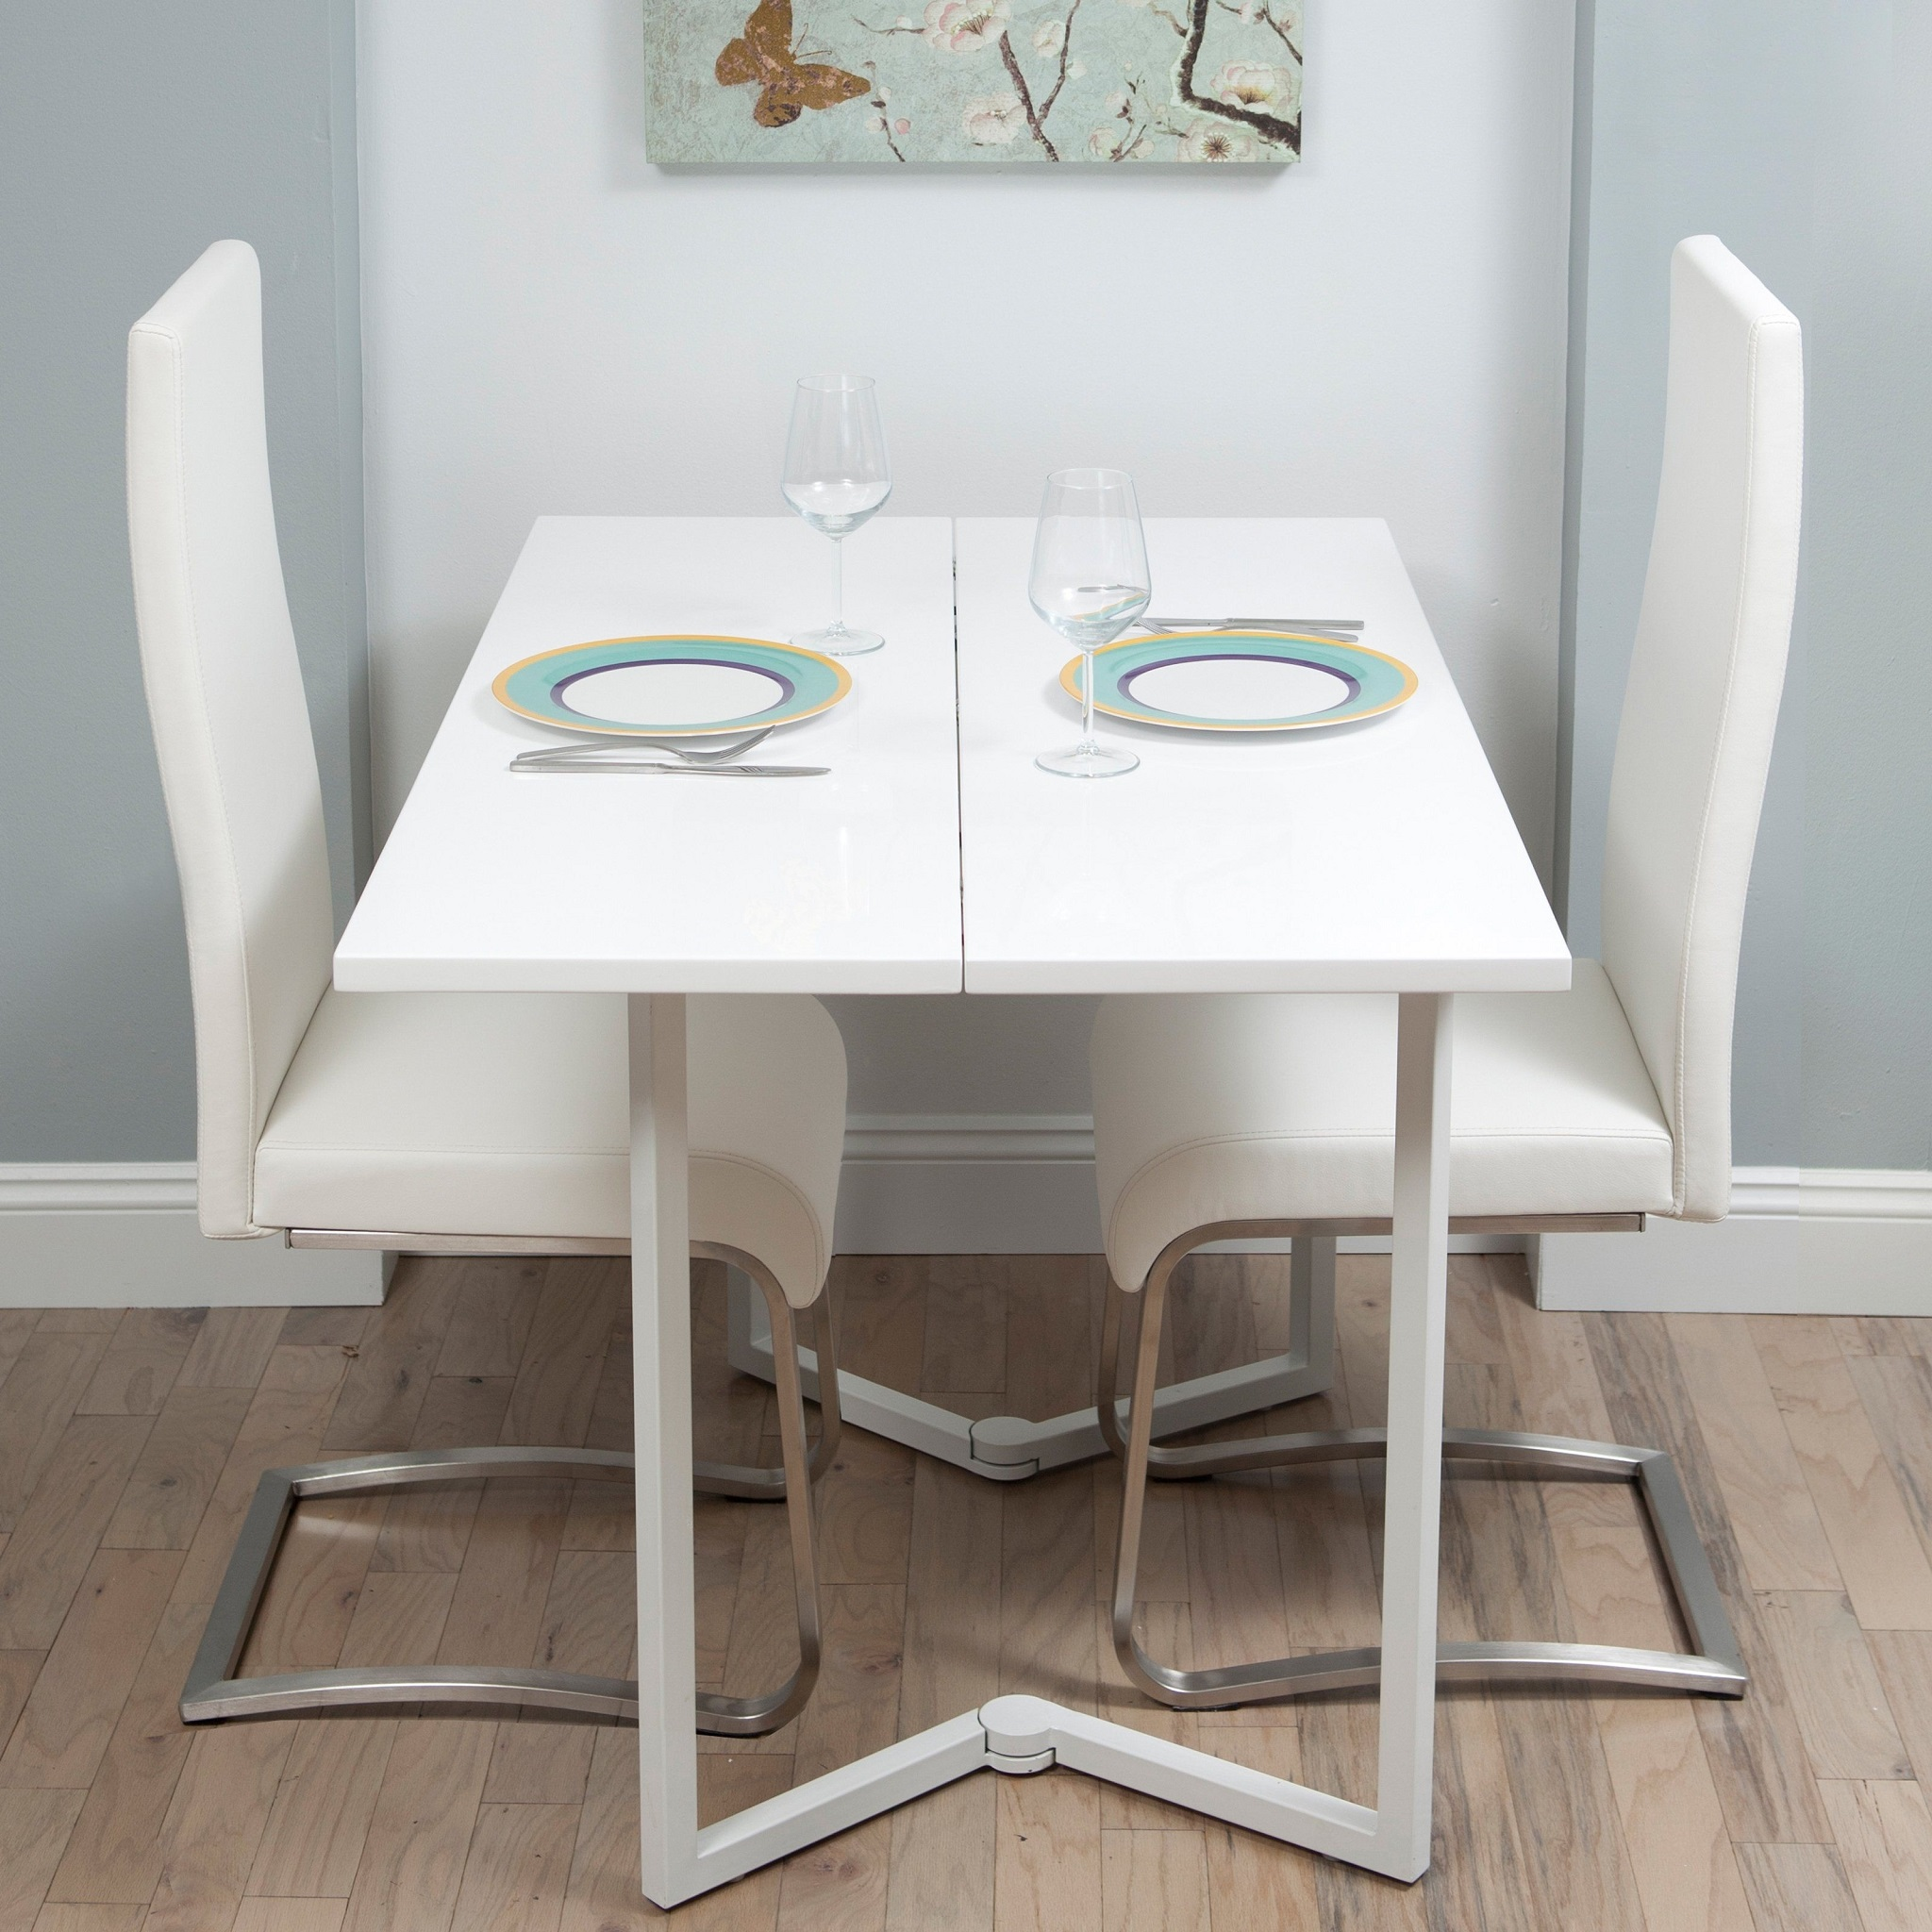 White Stylish Folding Dining Table For Apartment (Image 19 of 20)